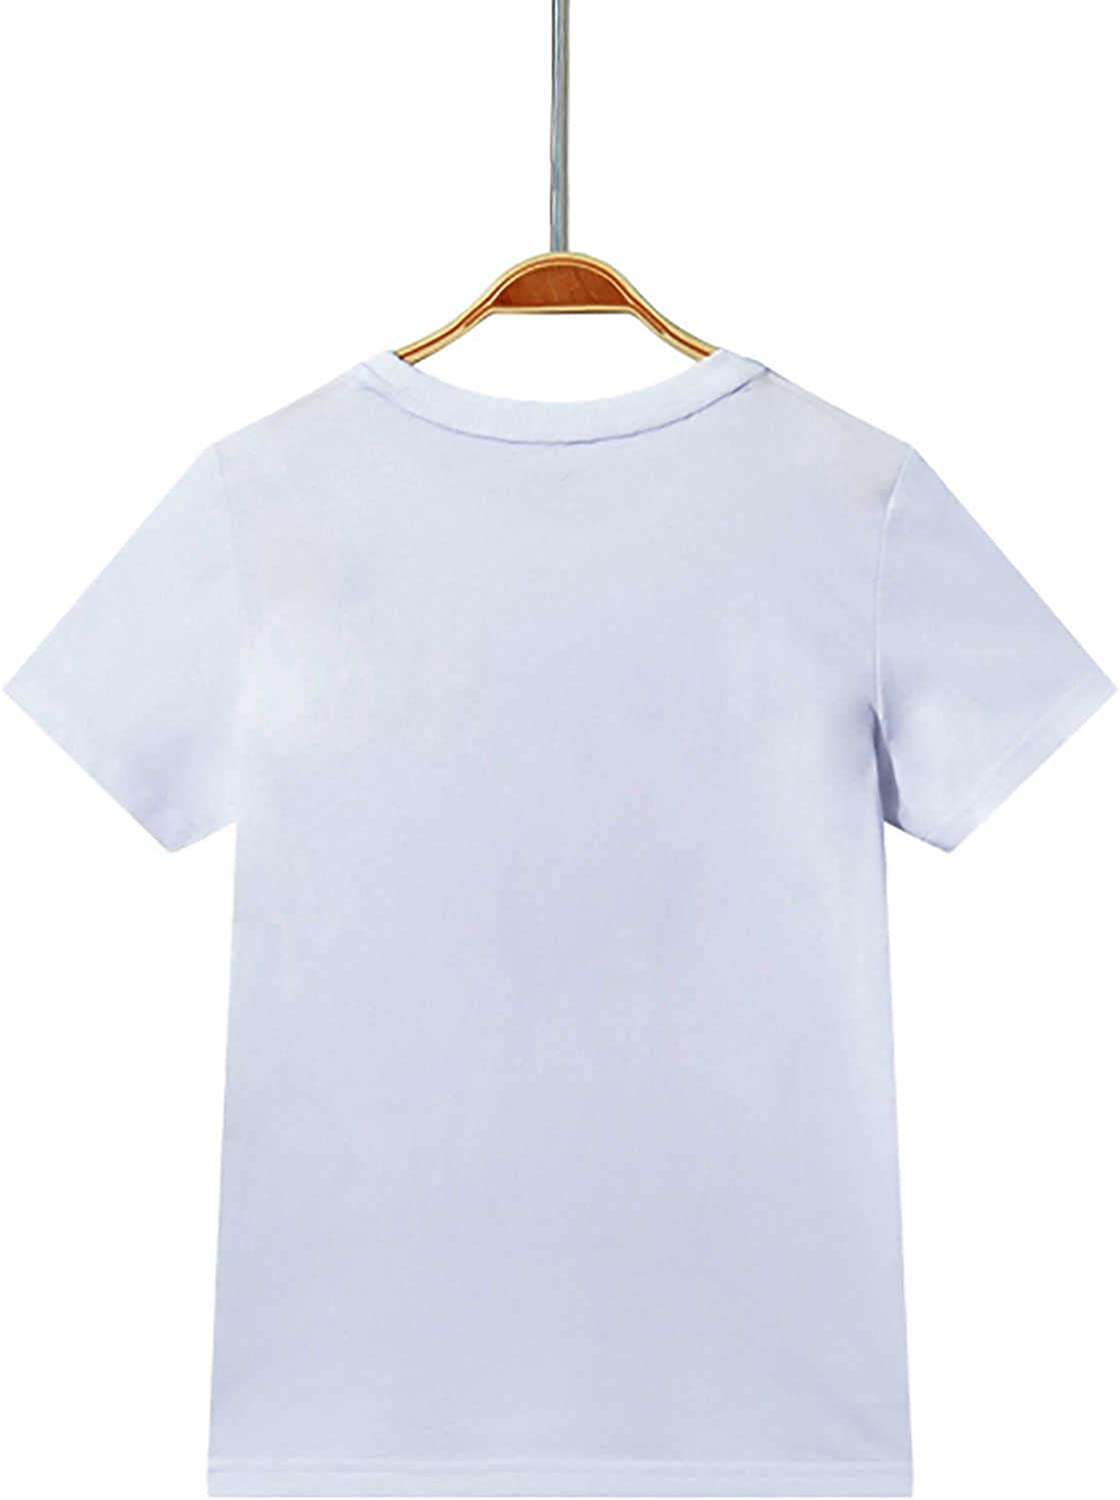 Novelty Cotton AS-HIGH-AS-Honour Tshirt for Boys Or Girls